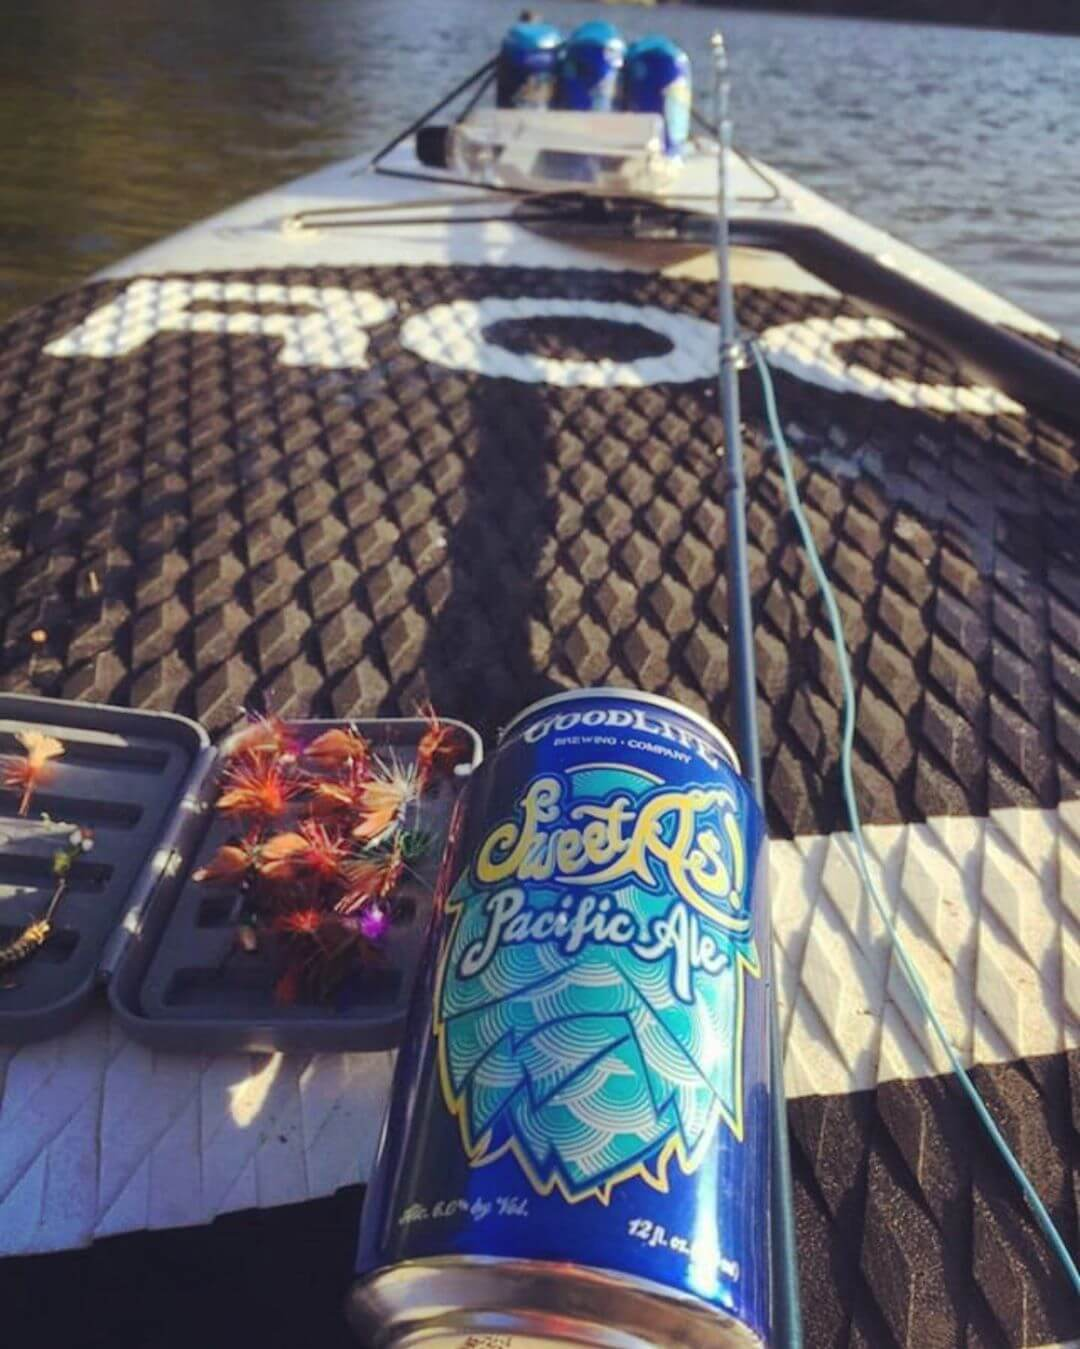 The early bird gets the fly… or a cold Sweet As! @nw_mtn_hemlock is making us jealous we aren't out on the water this morning! #whatsyourgoodlife #sweetaspacificale 📸: @nw_mtn_hemlock